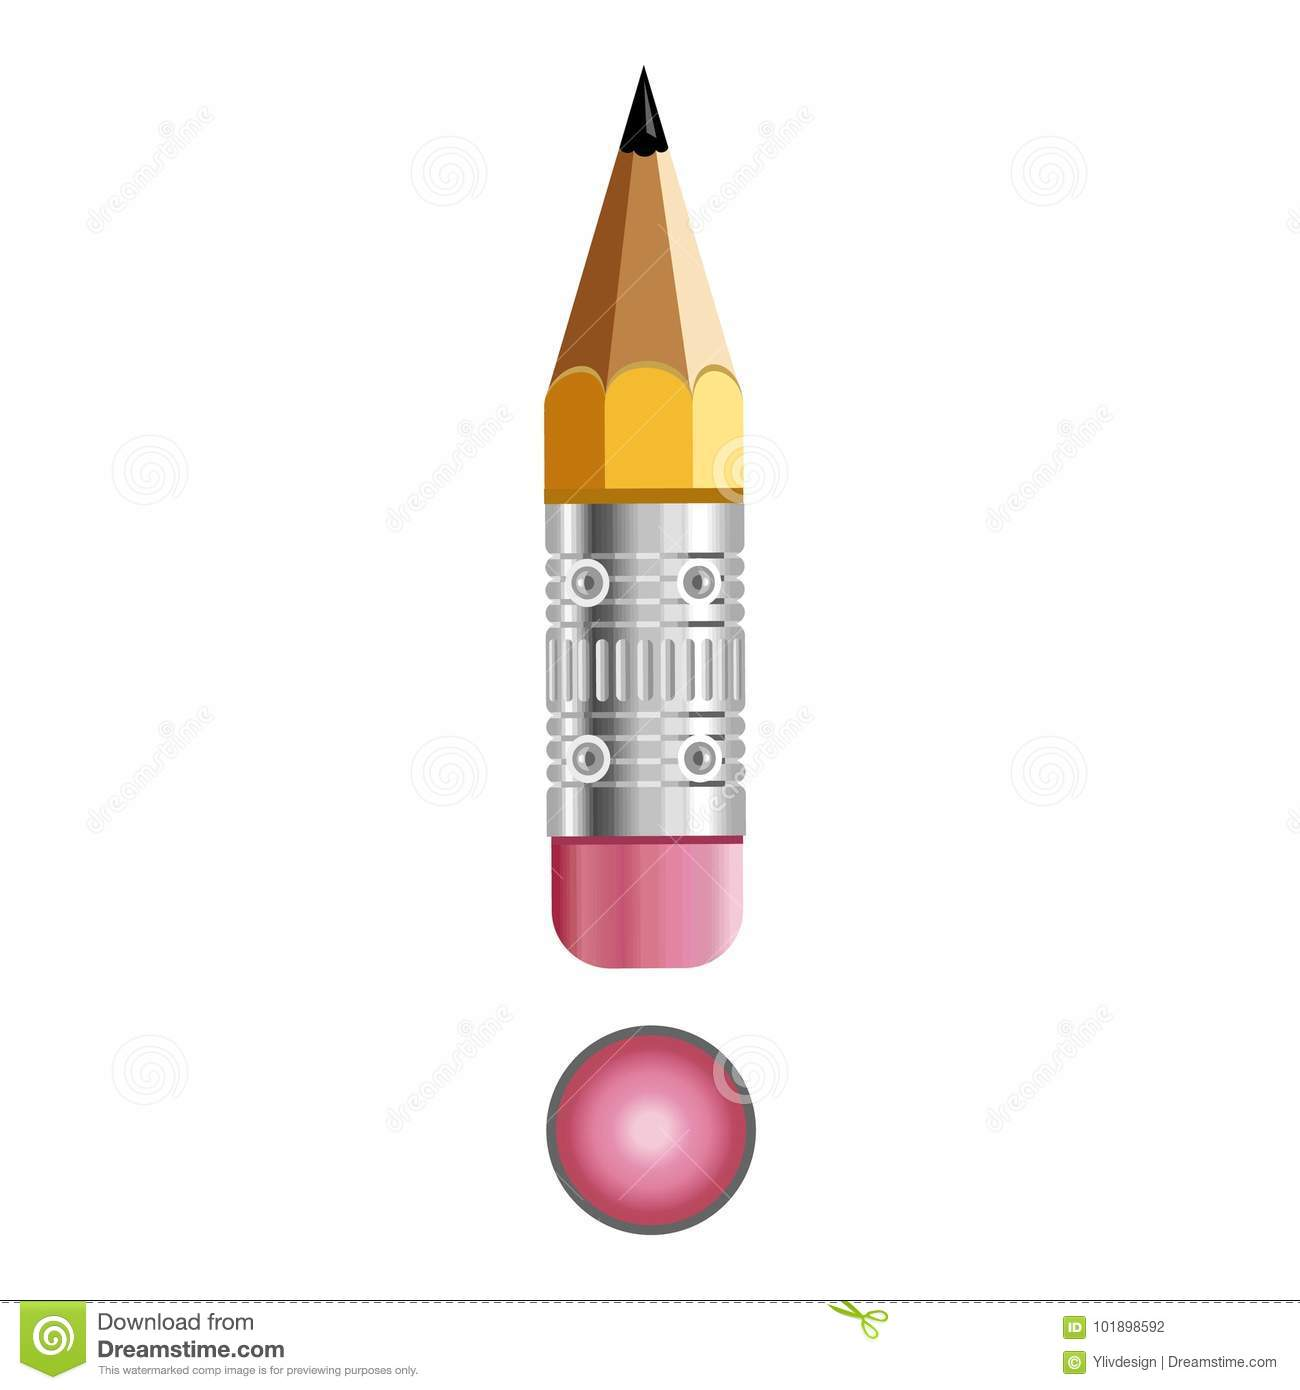 sign exclamation mark pencil icon cartoon style